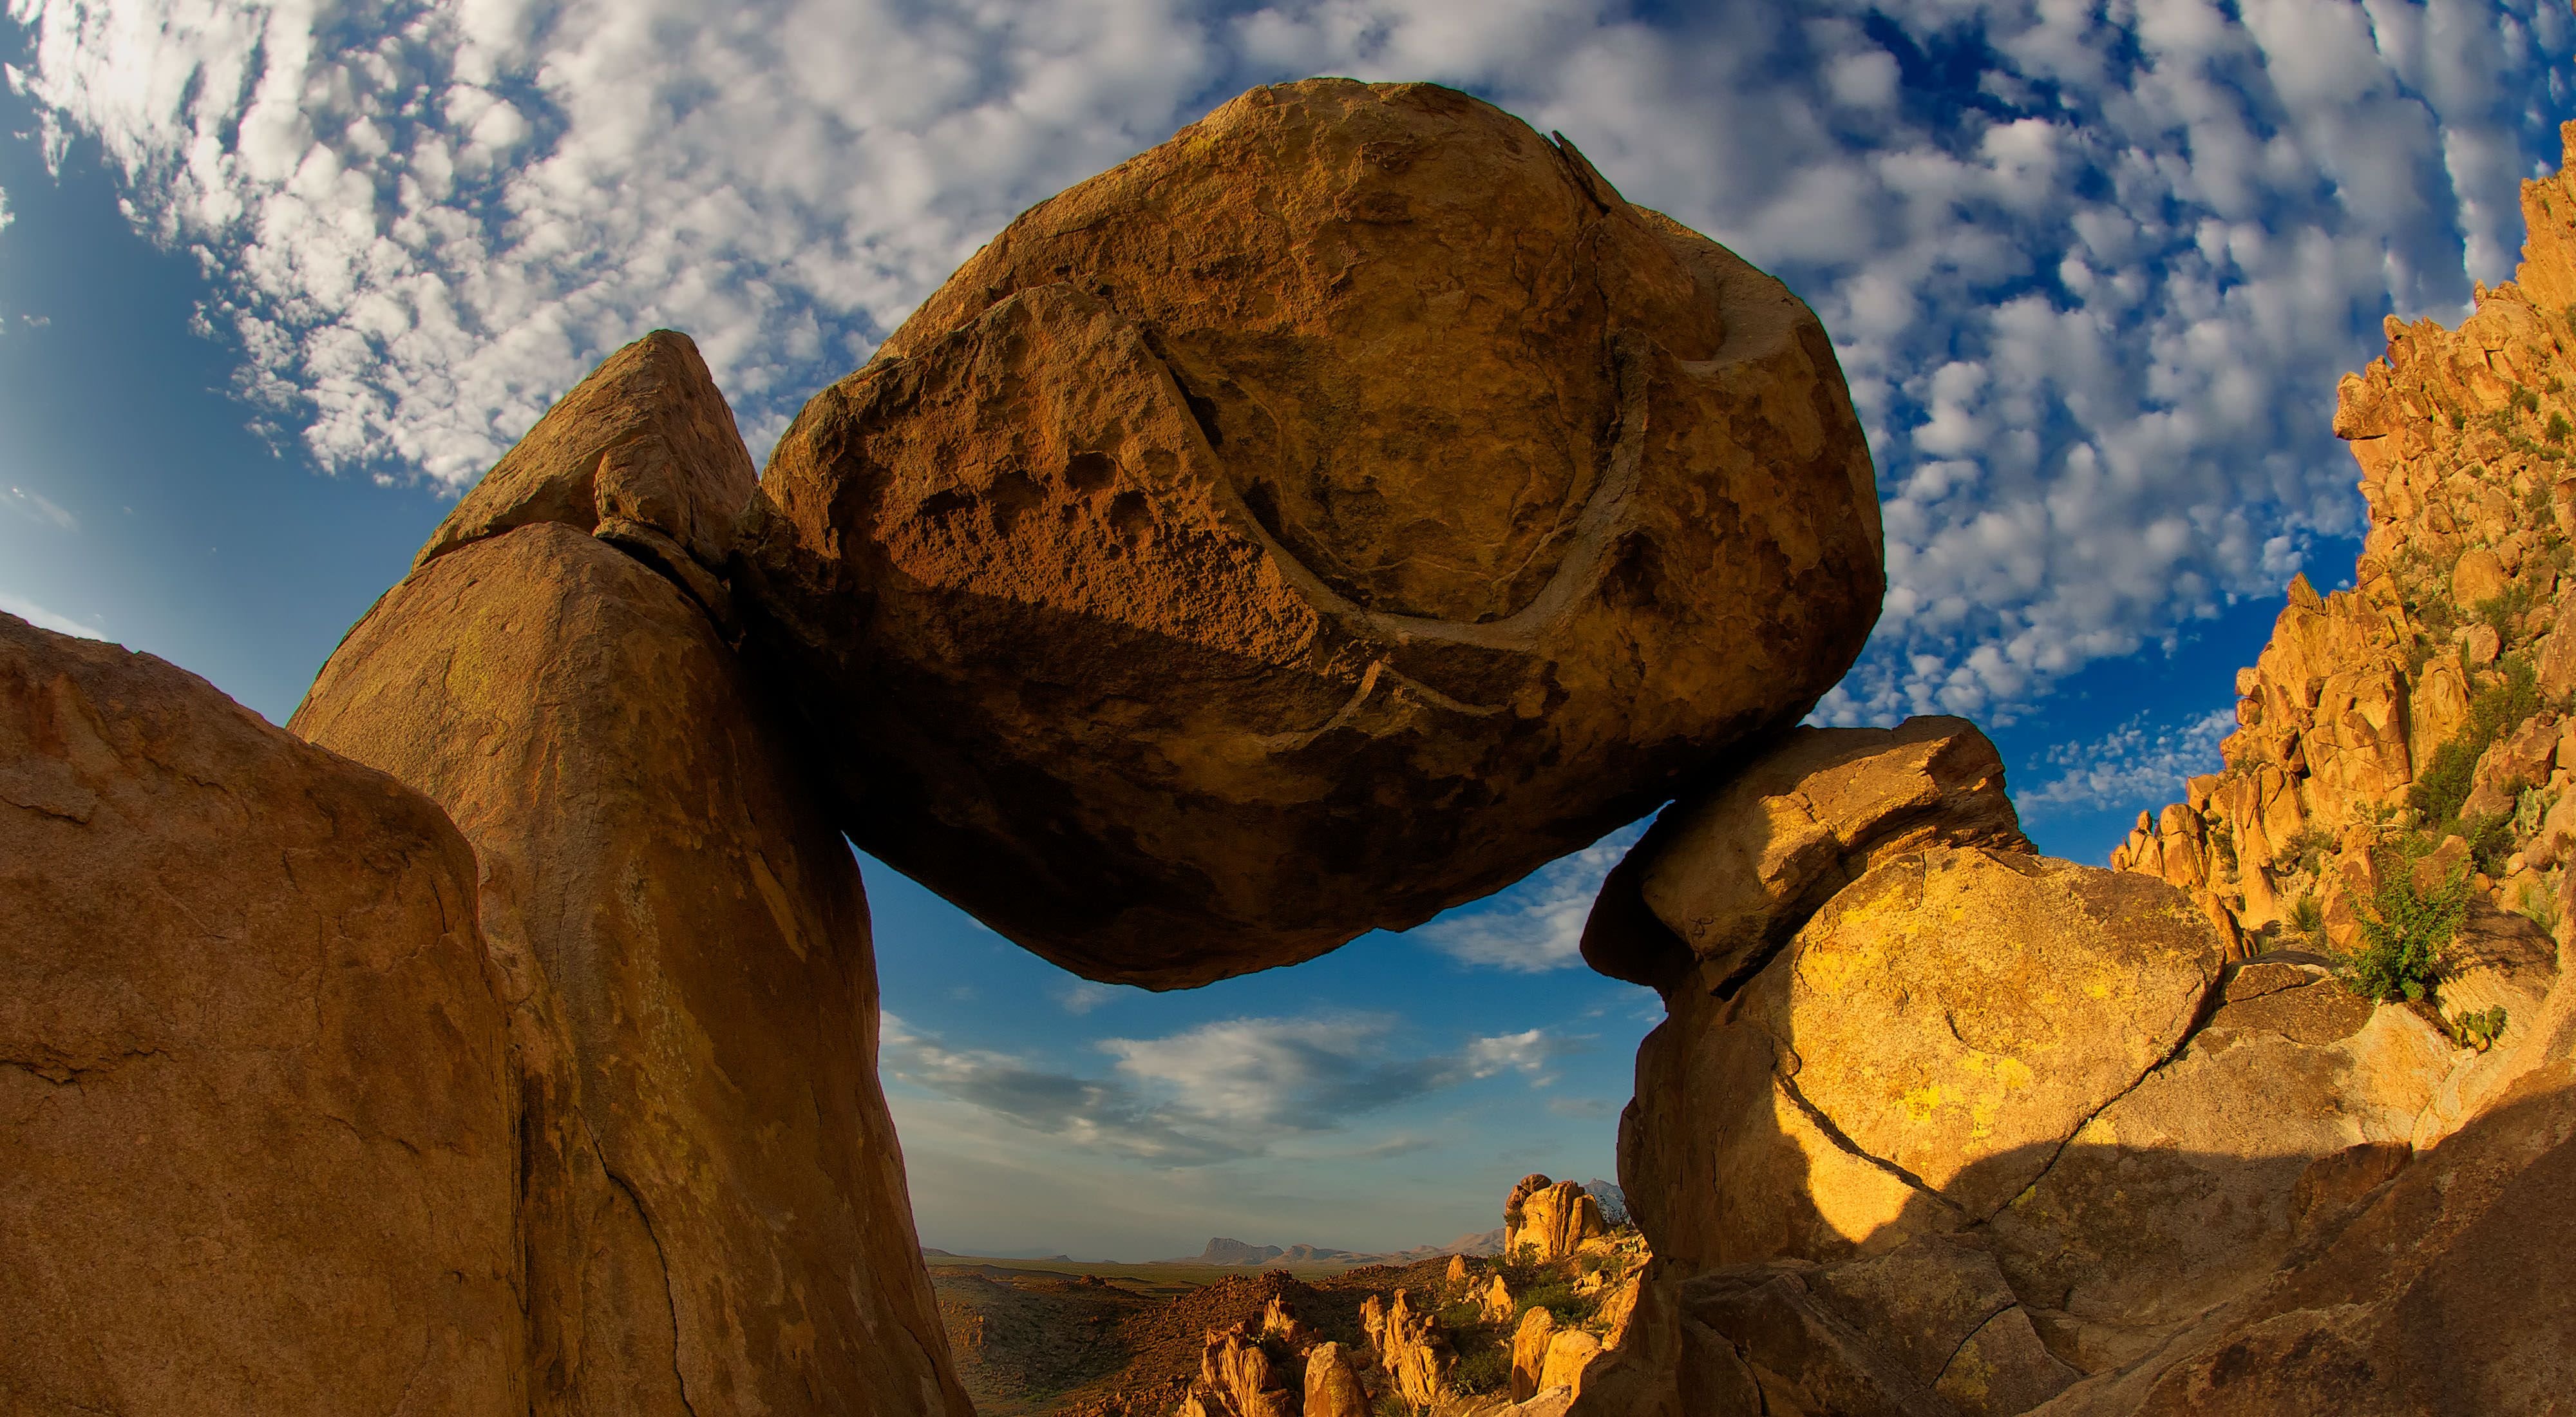 A huge reddish brown boulder balanced above the ground between two other rocks.